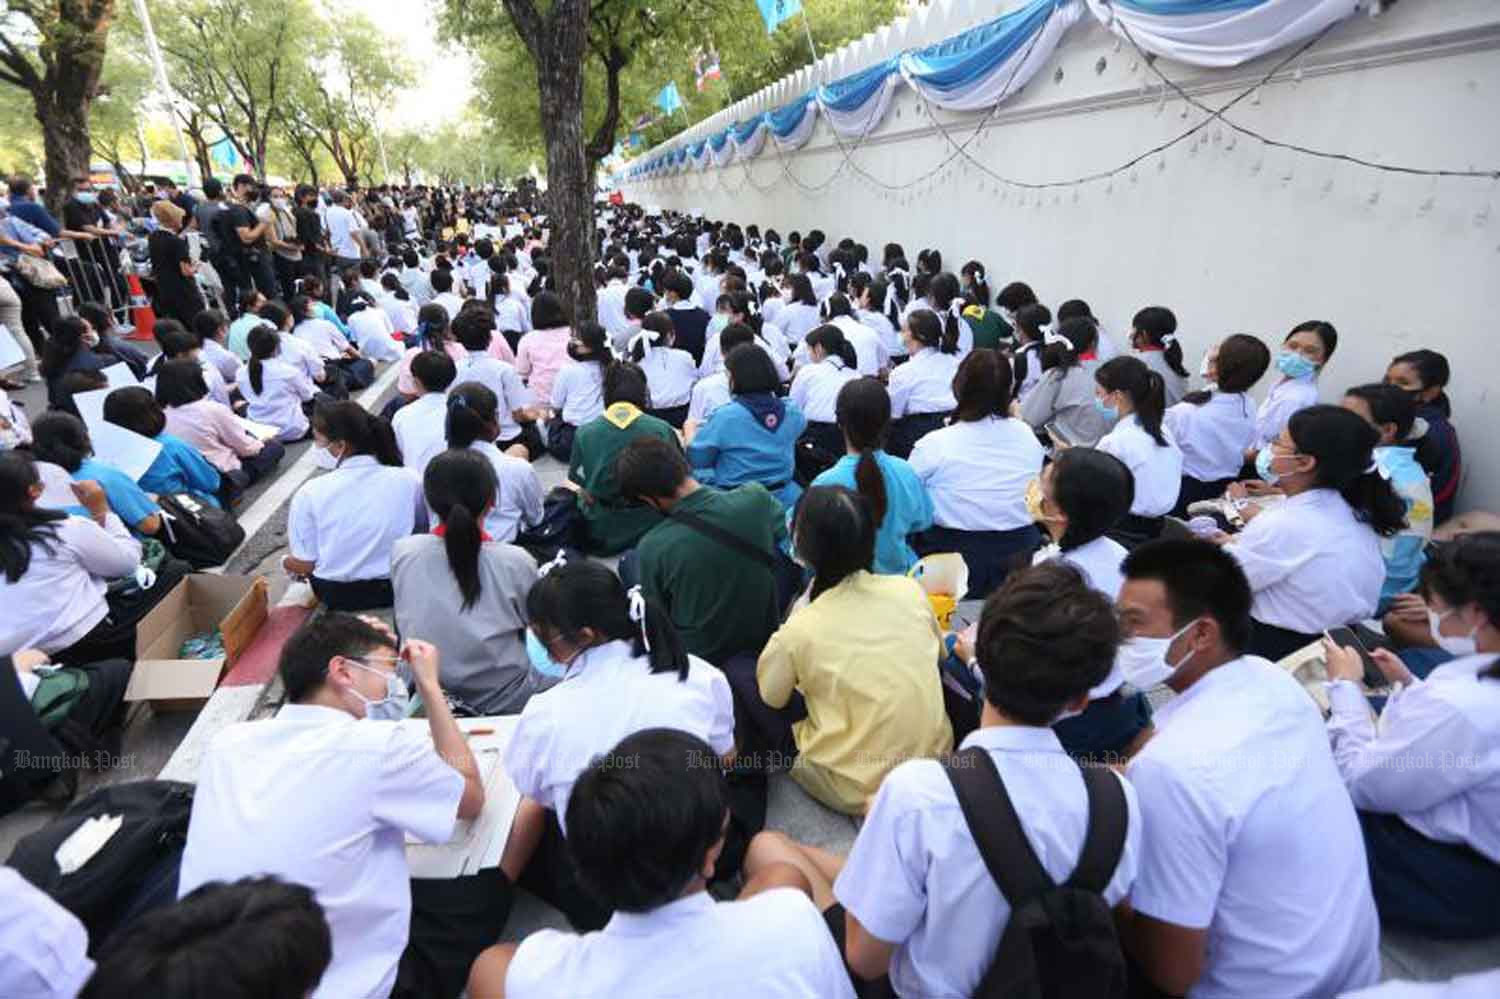 Students rally in front of the Education Ministry in Bangkok on Wednesday evening. (Photo by Pattarapong Chatpattarasill)